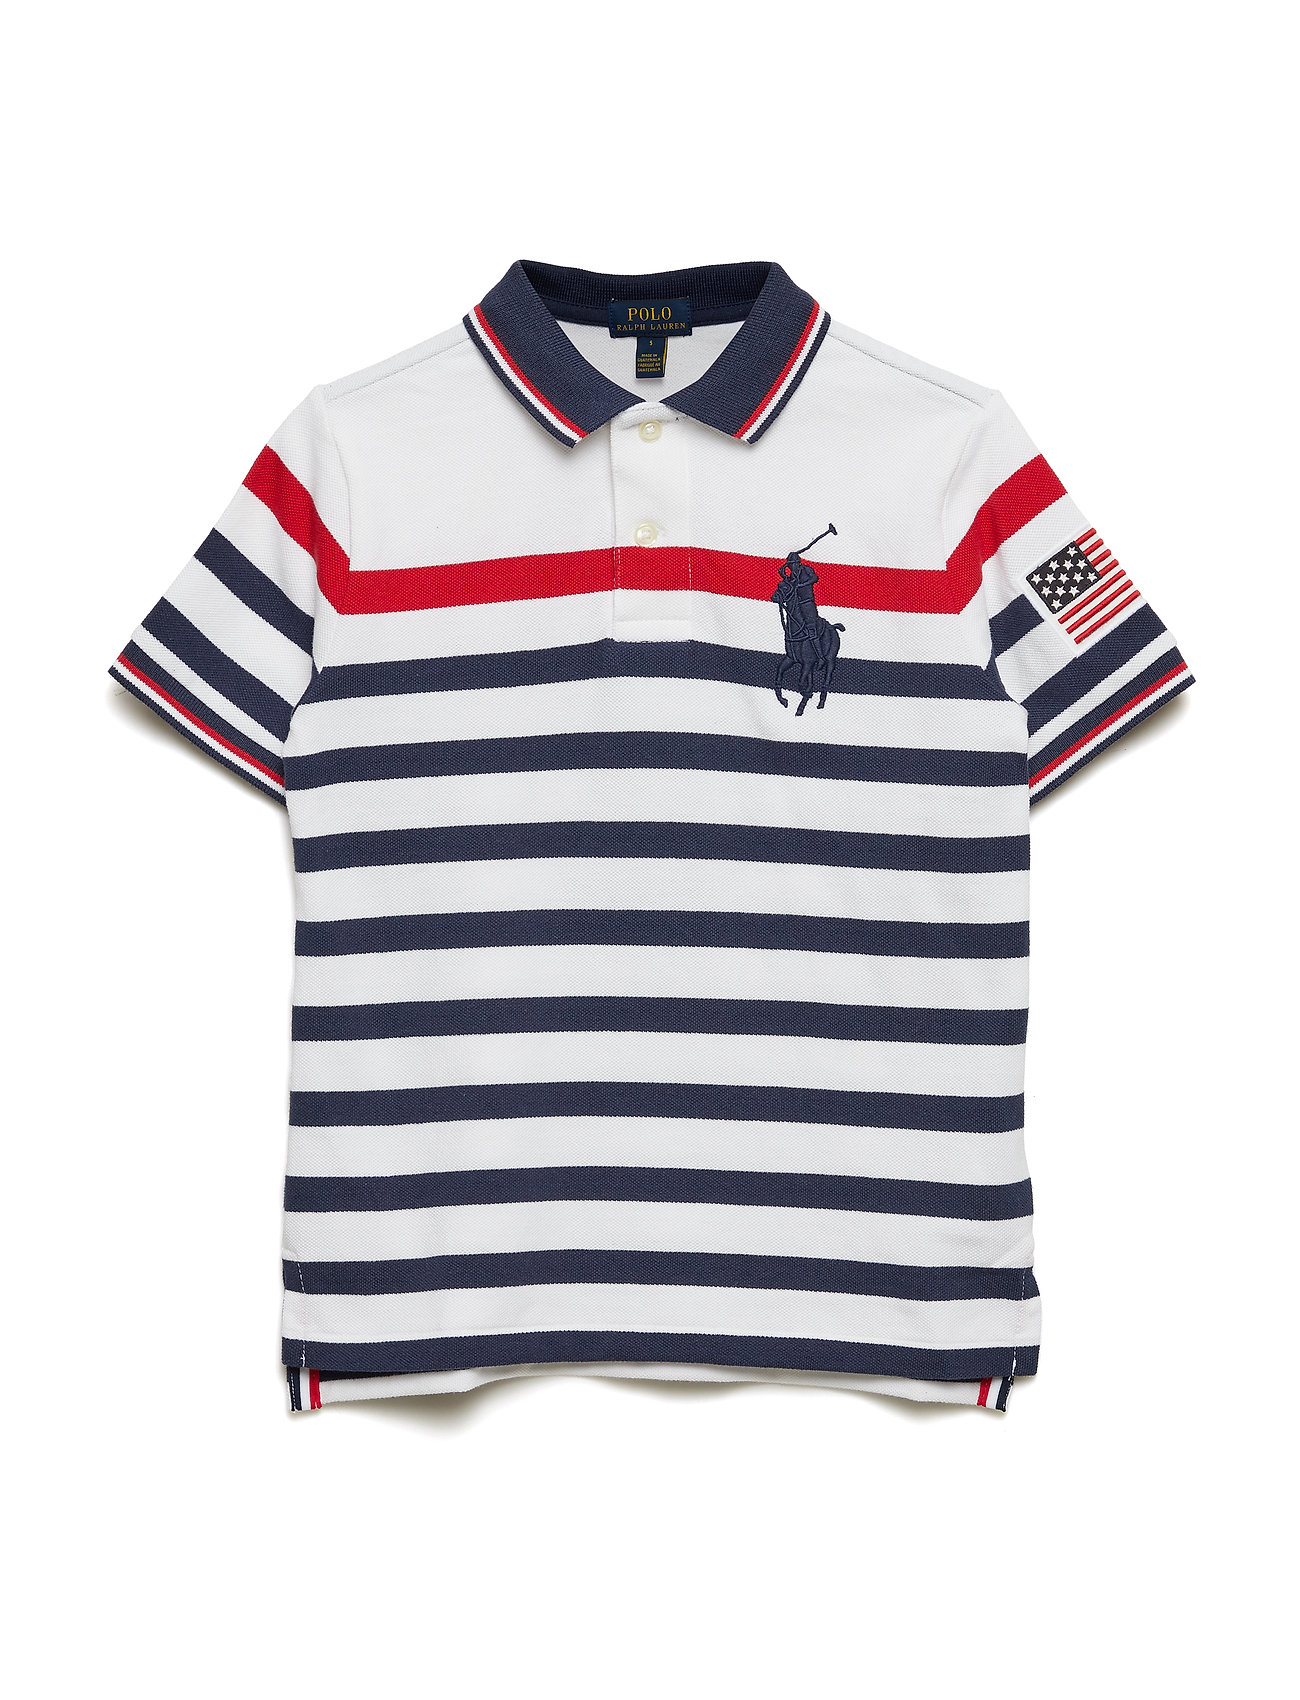 ef0eb1b50 Striped Cotton Mesh Polo Shirt (White Multi) (£65) - Ralph Lauren ...